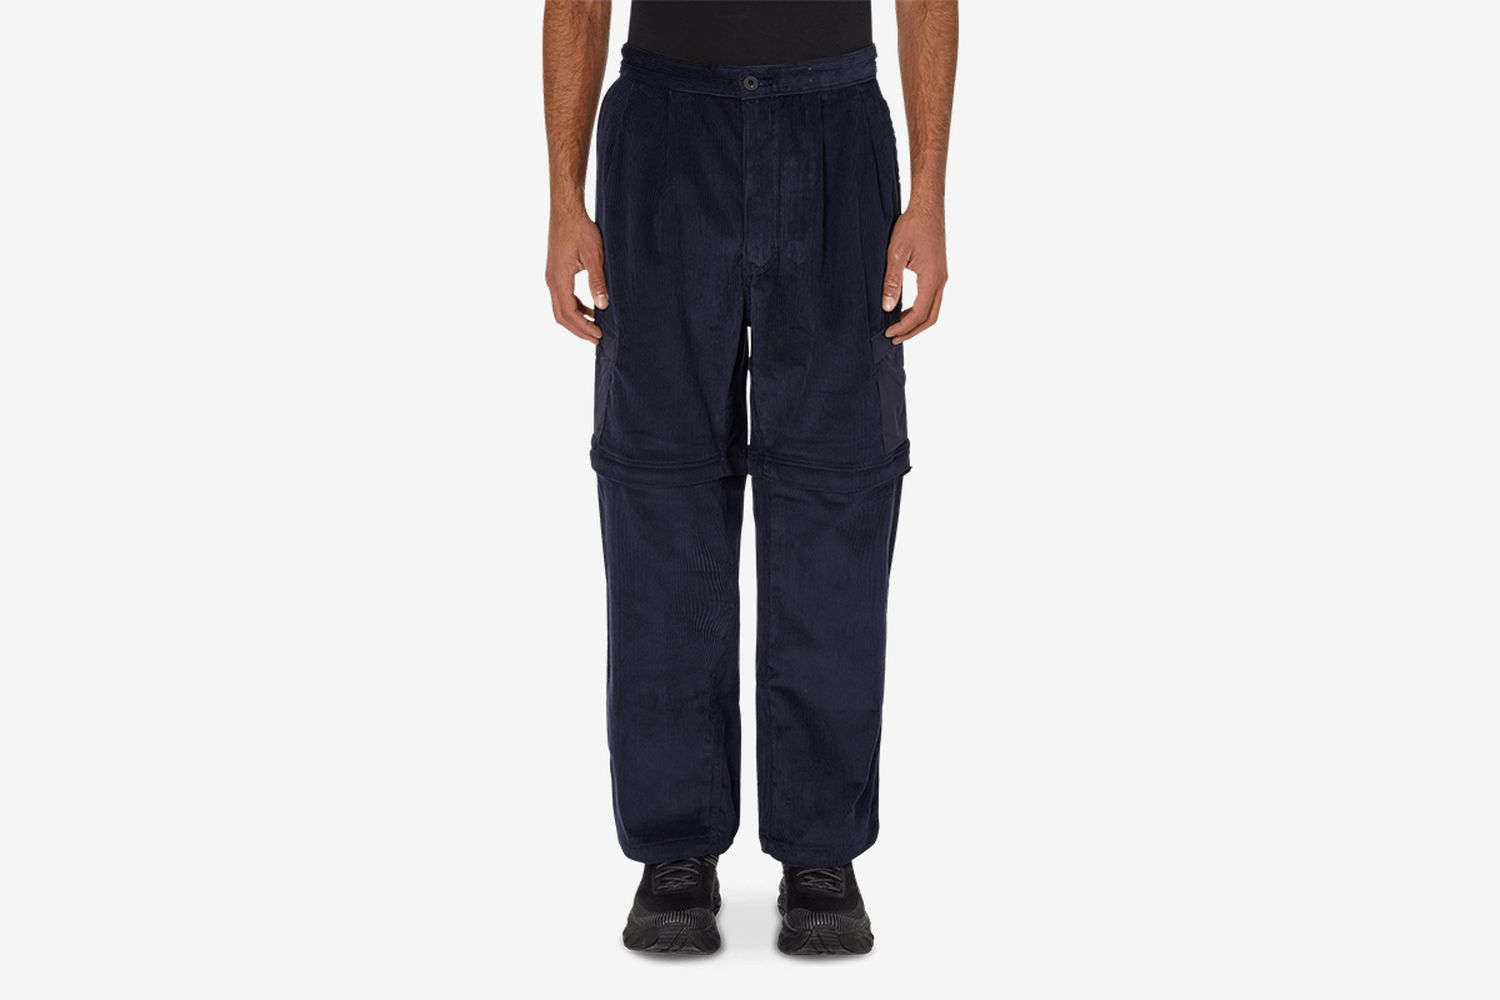 Tier One Convertible Corduroy Zip Off Pants